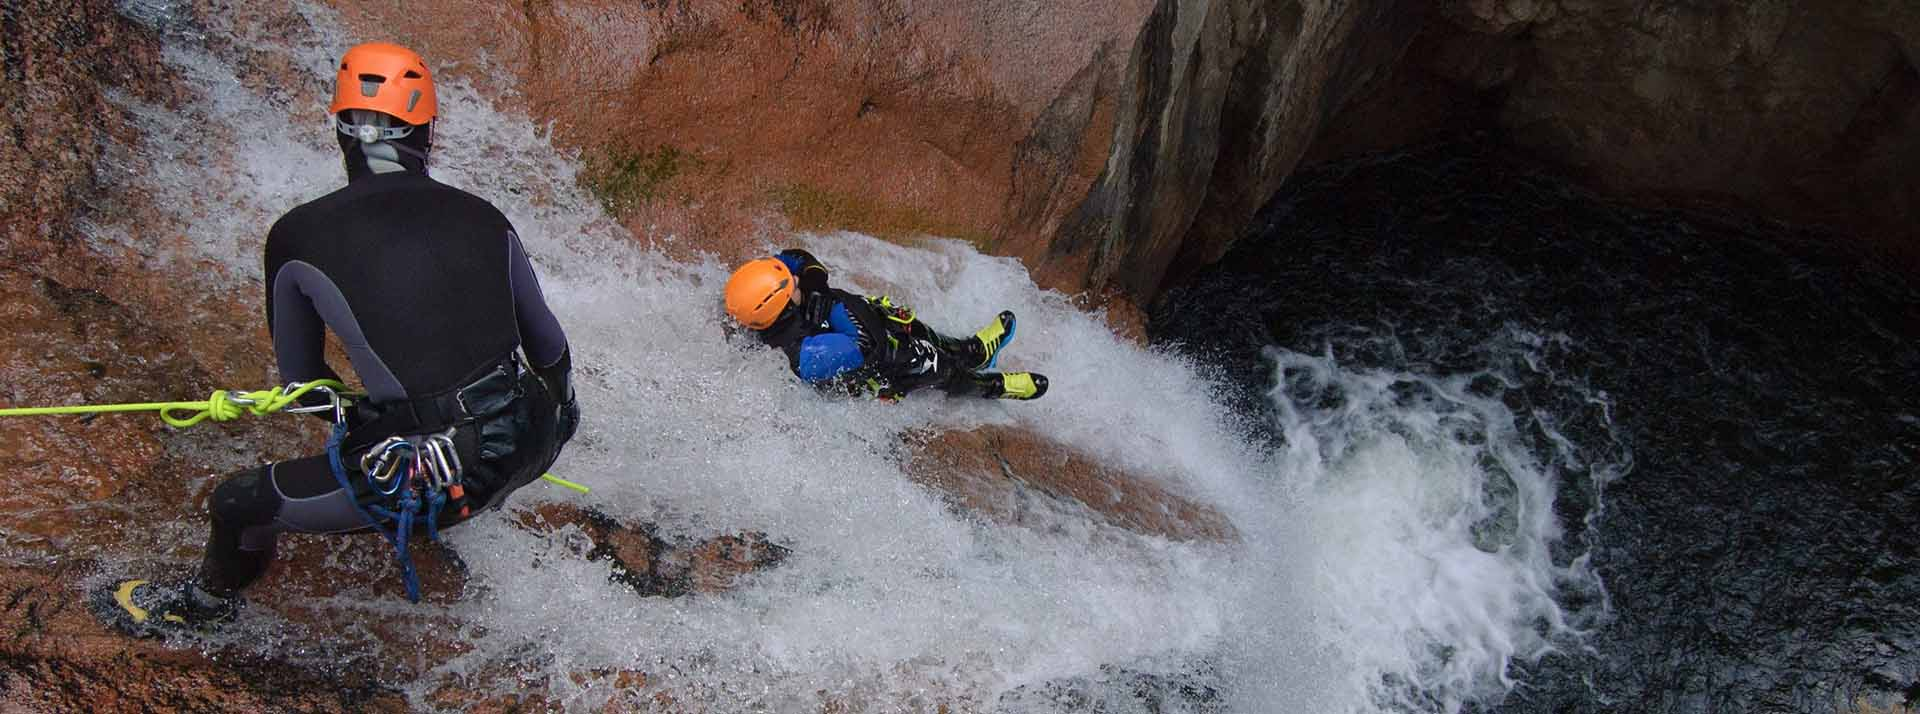 canyoning en c vennes dans l 39 h rault et autour de montpellier. Black Bedroom Furniture Sets. Home Design Ideas